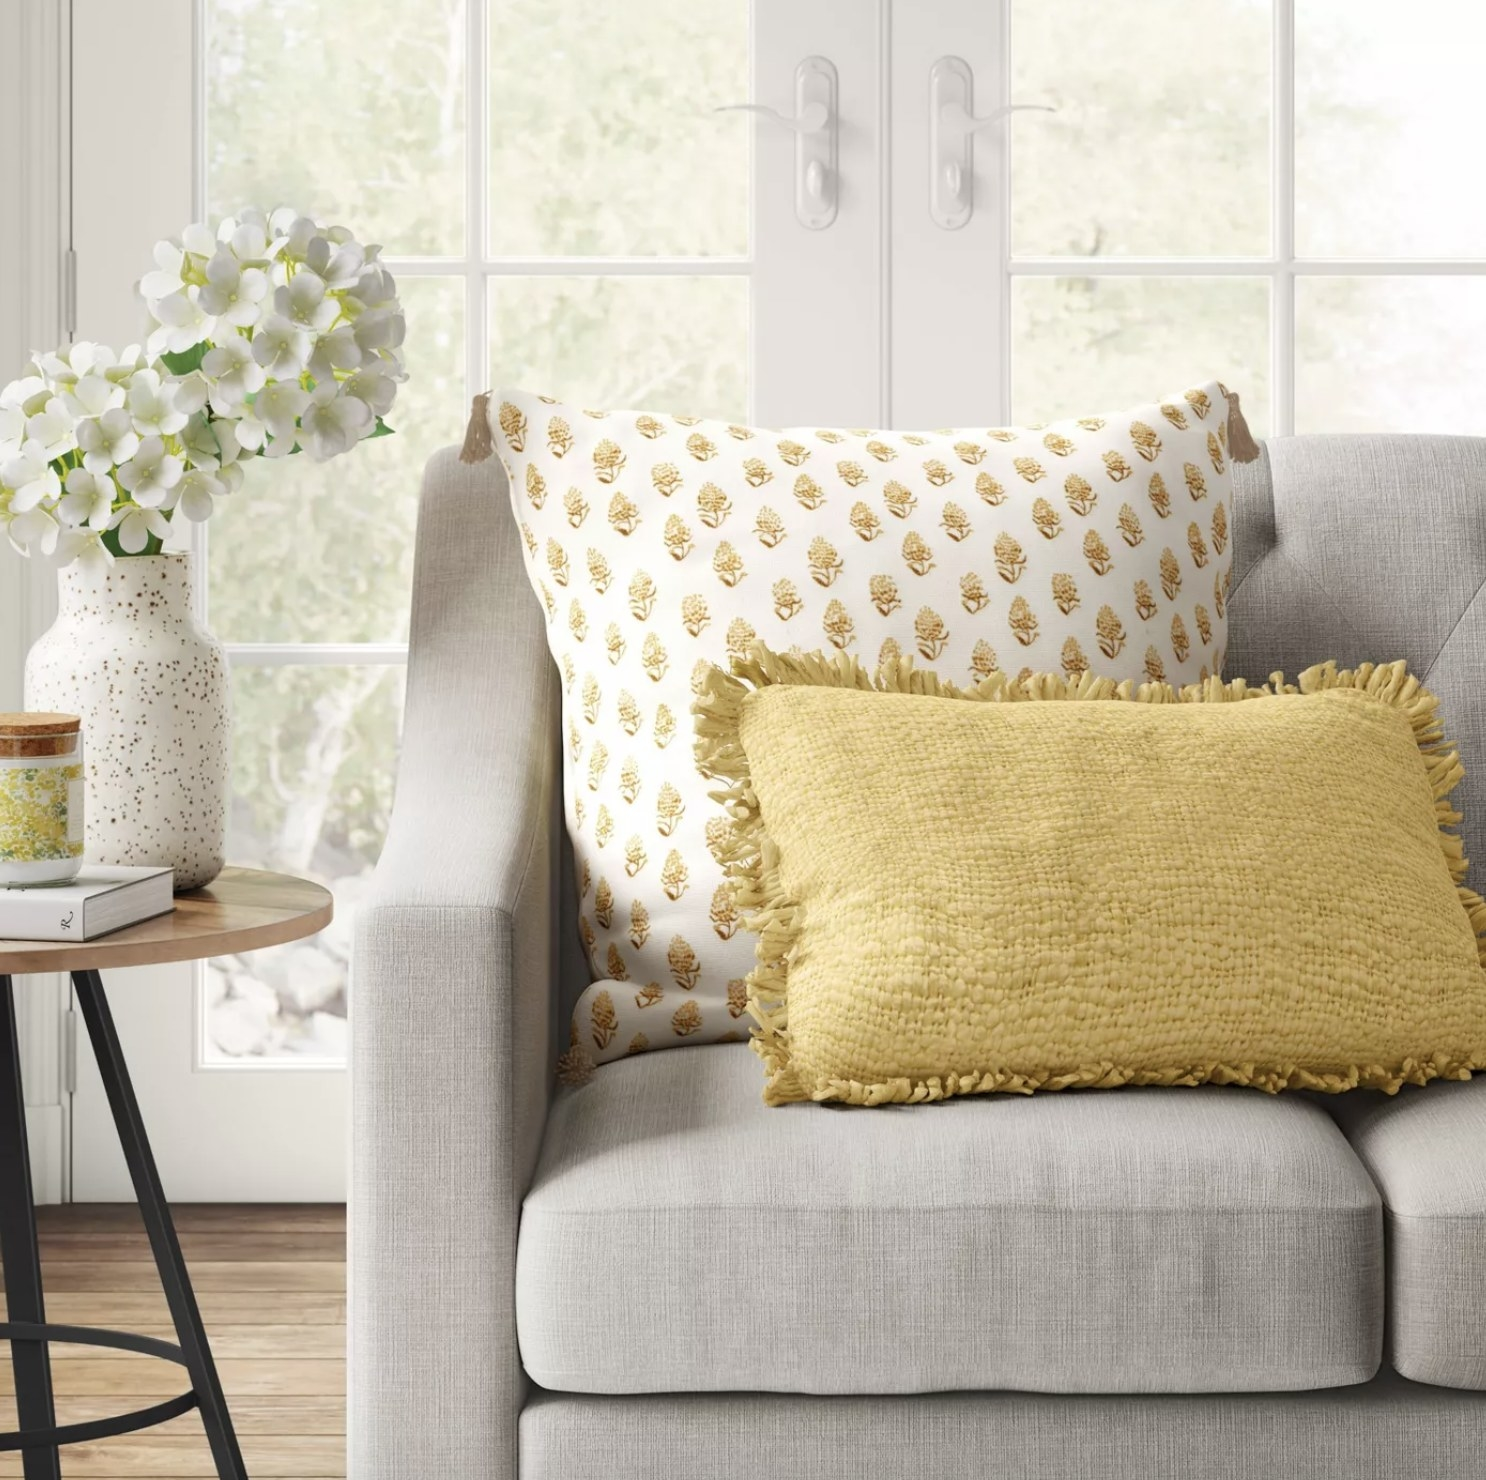 Decorative throw pillow styled on couch.